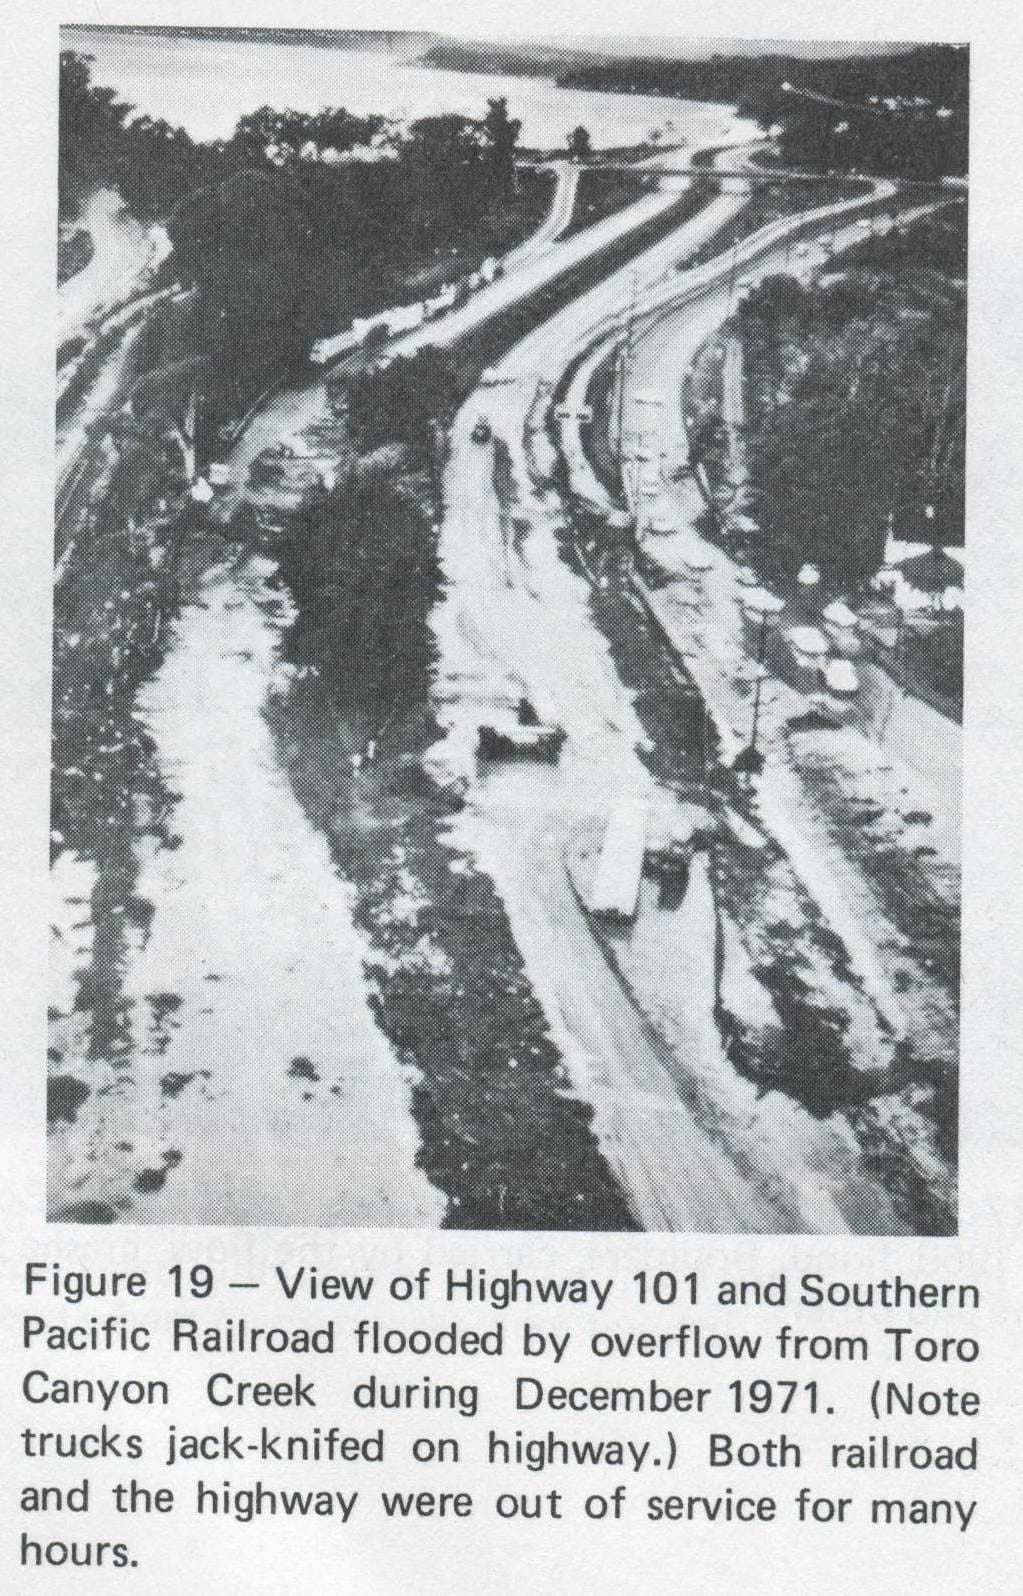 Flooding across Highway 101 near Padaro Lane, December 1971.